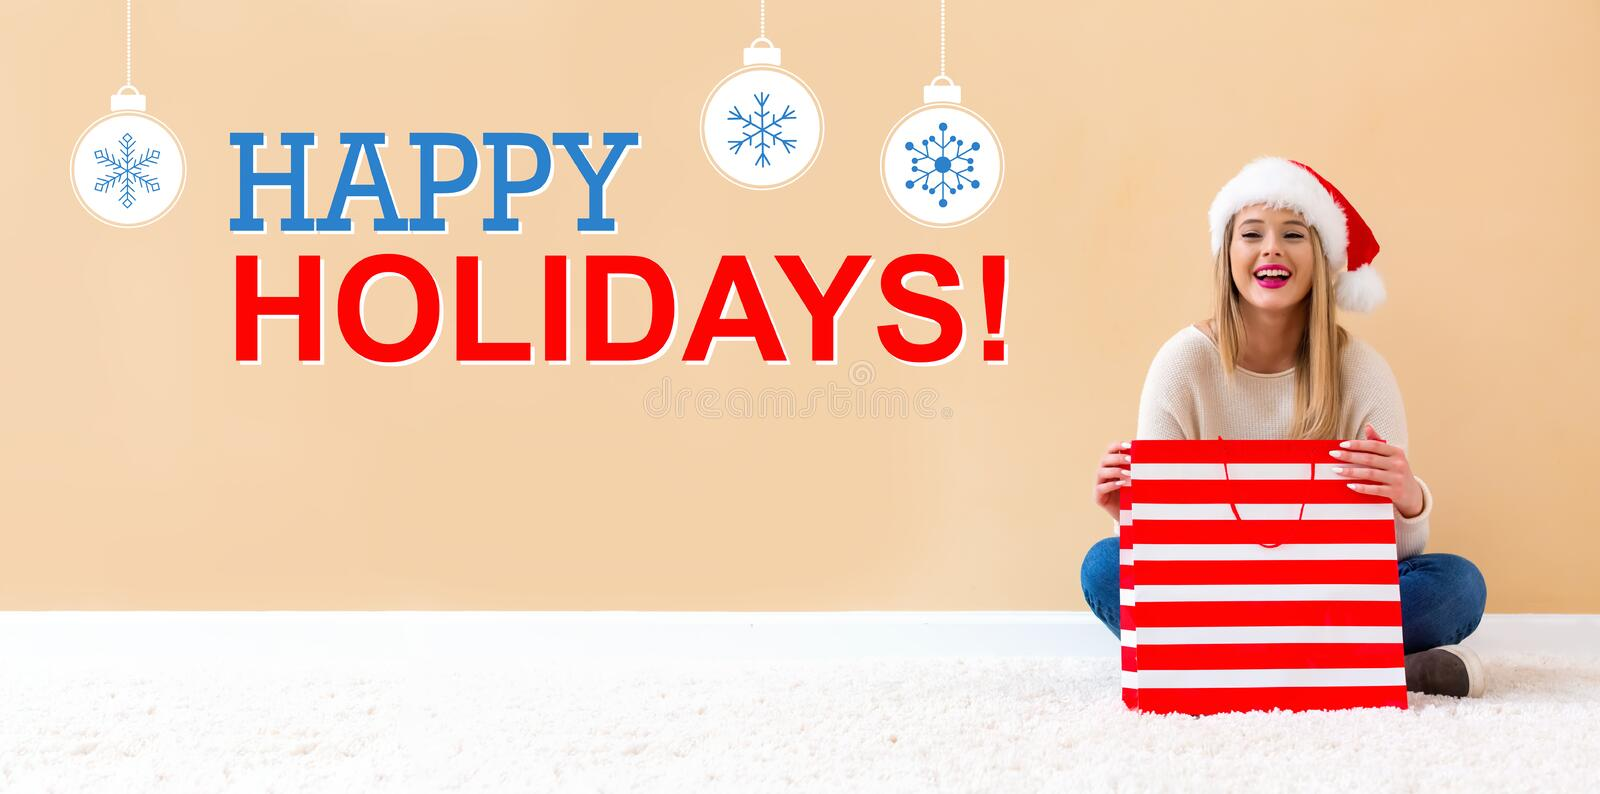 Happy holidays message with woman with Santa hat holding a shopping bag royalty free stock photos